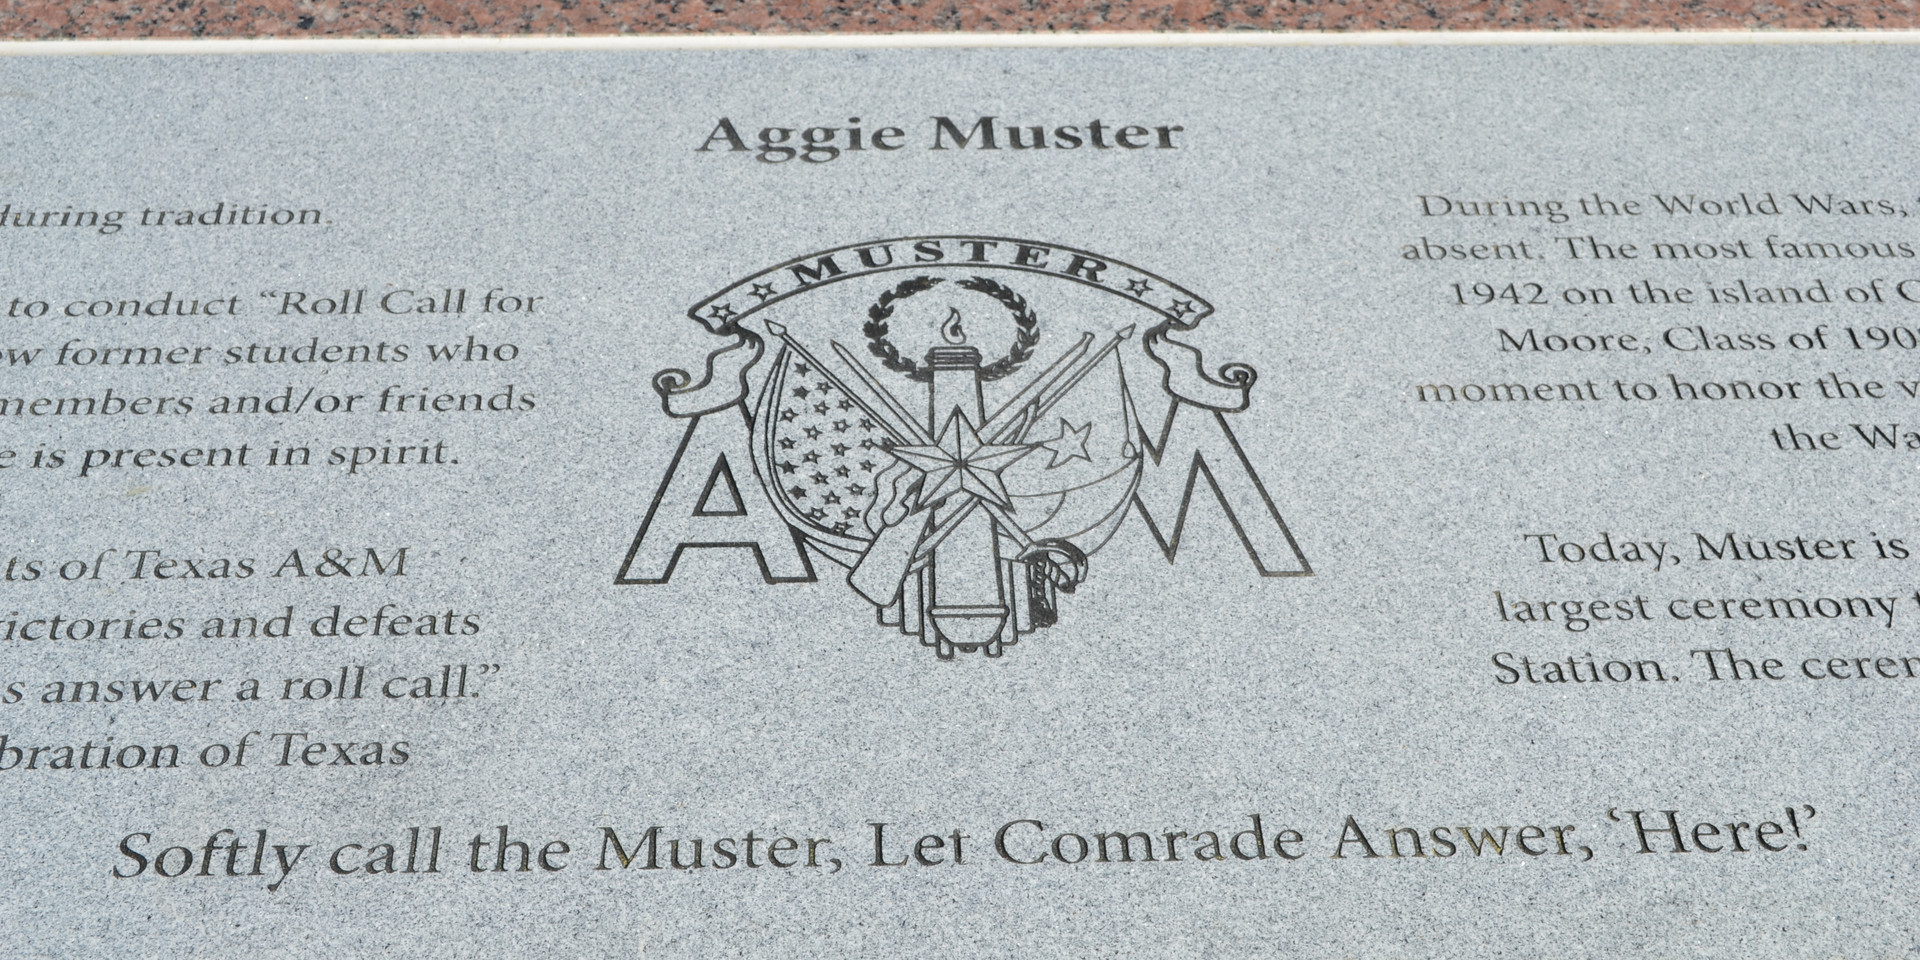 Aggie Muster